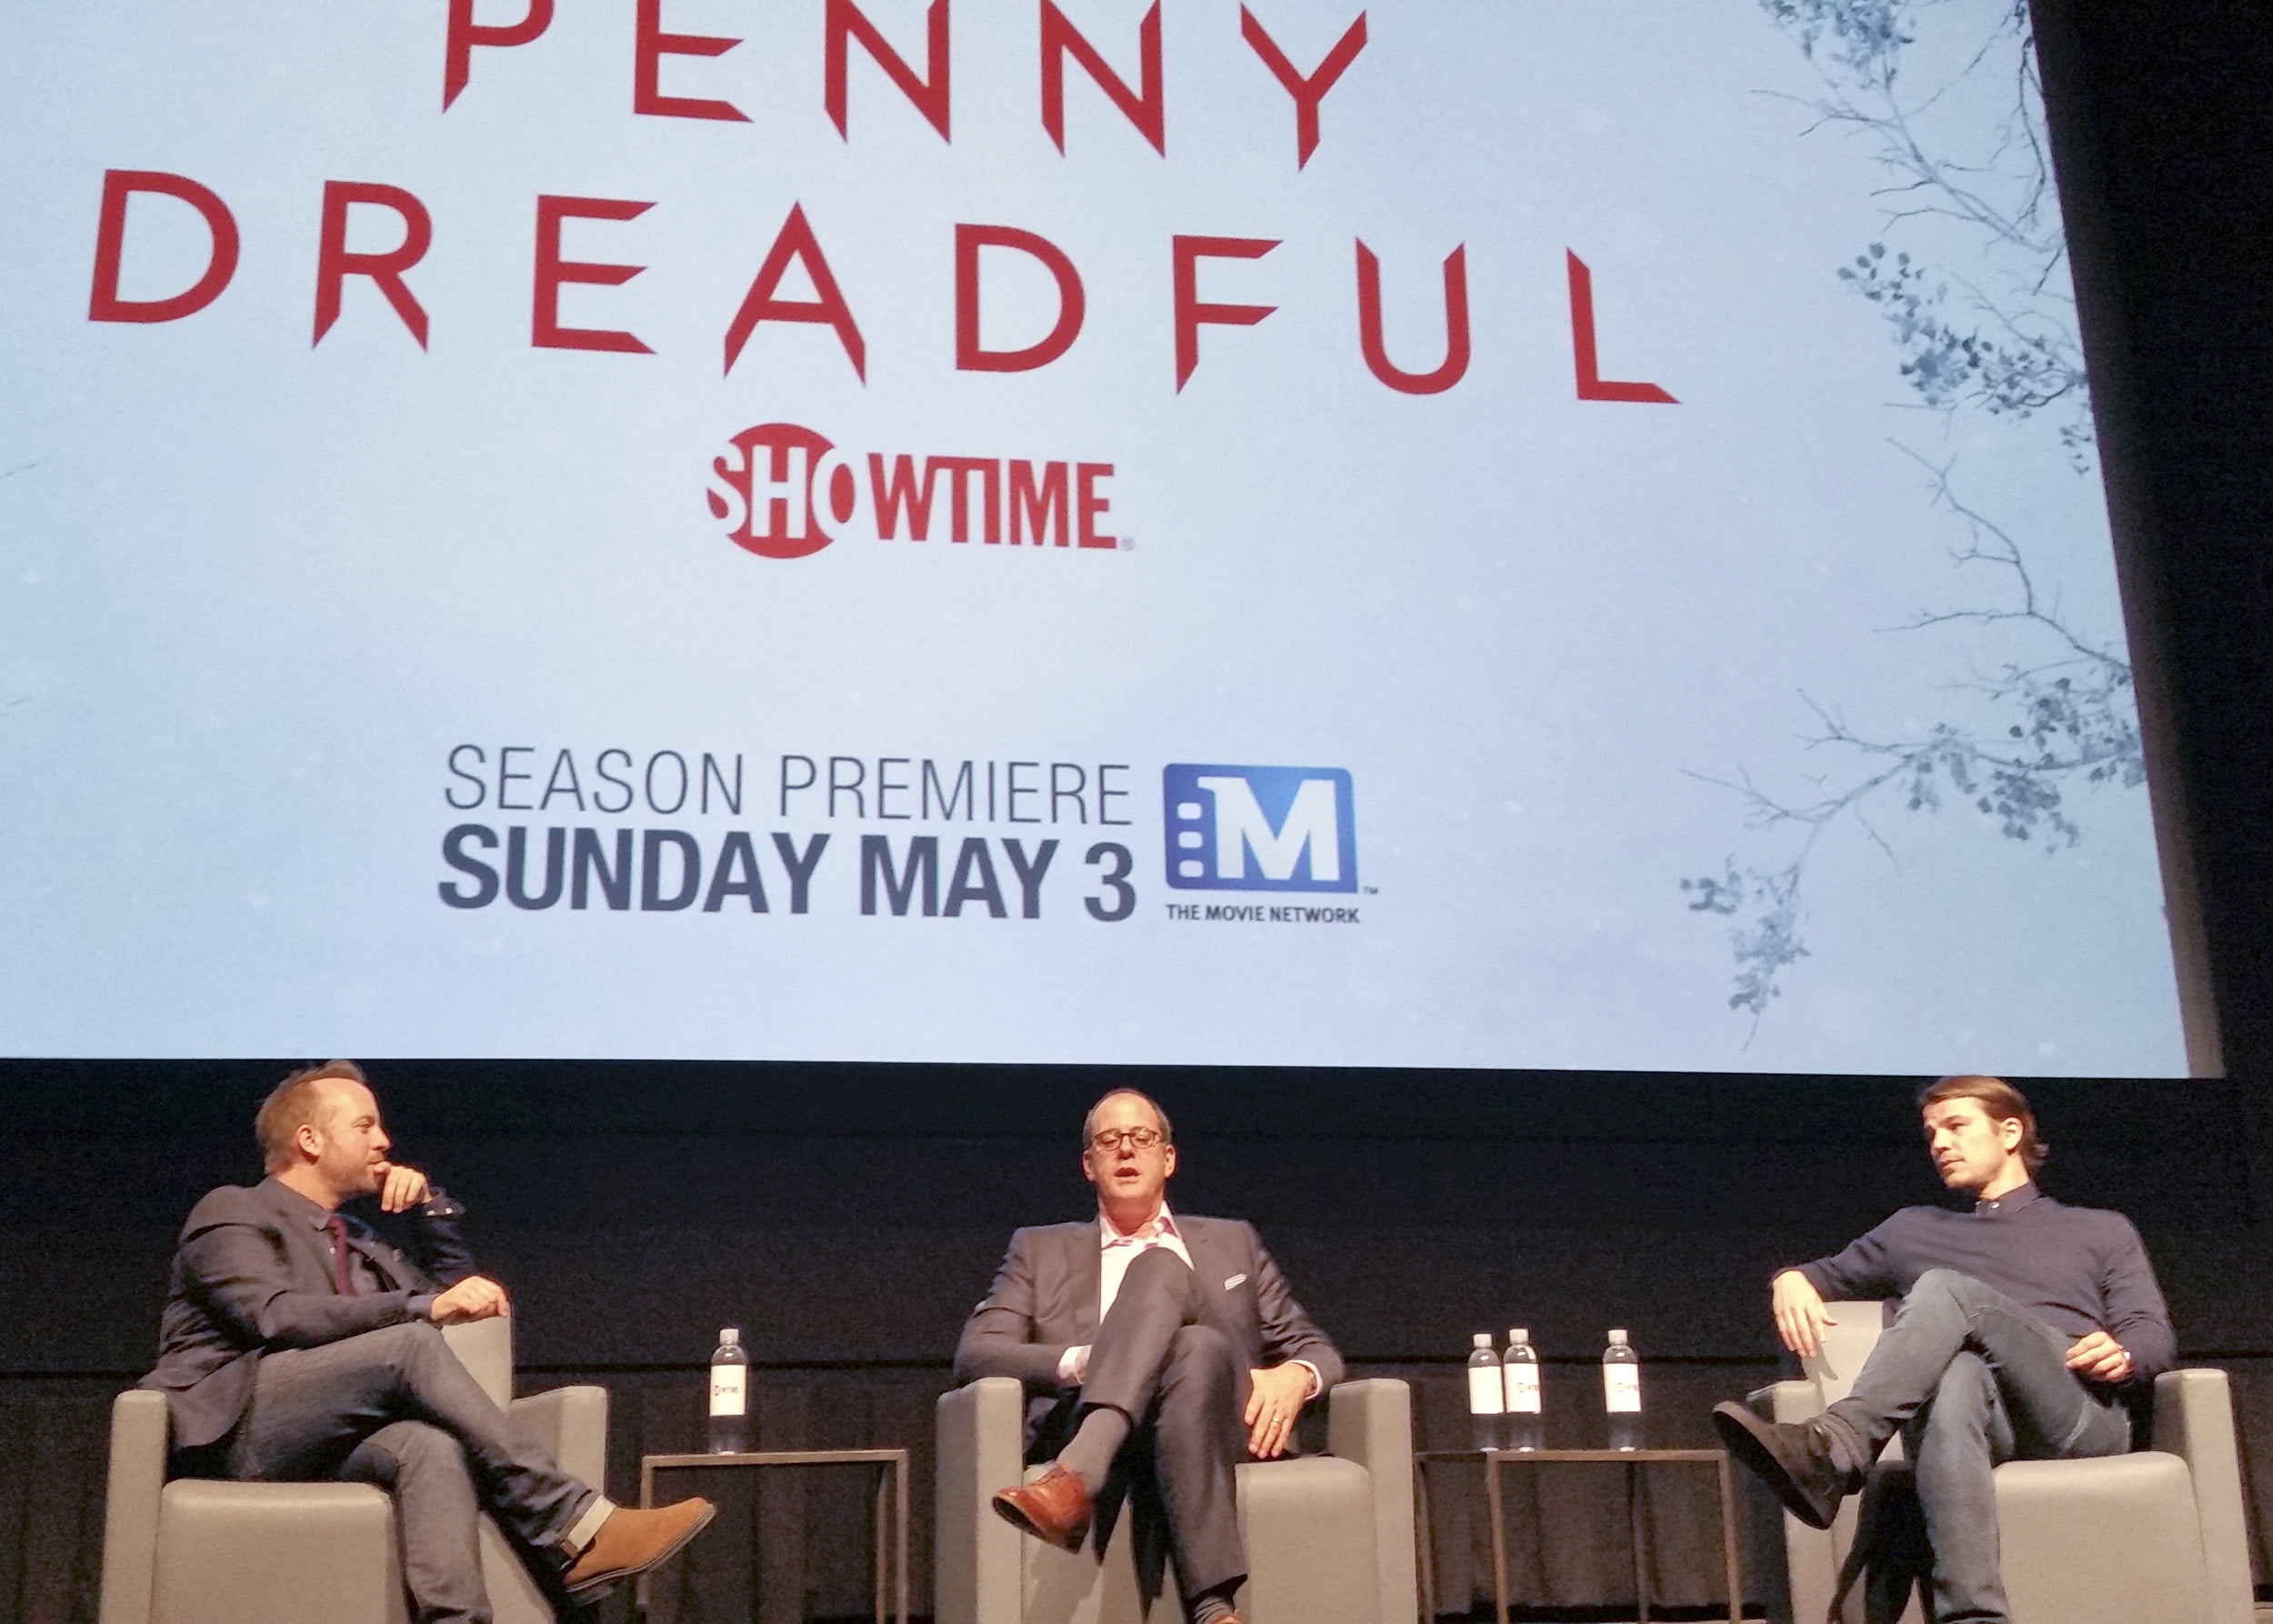 Penny Dreadful season 2 Q&A with Josh Hartnett